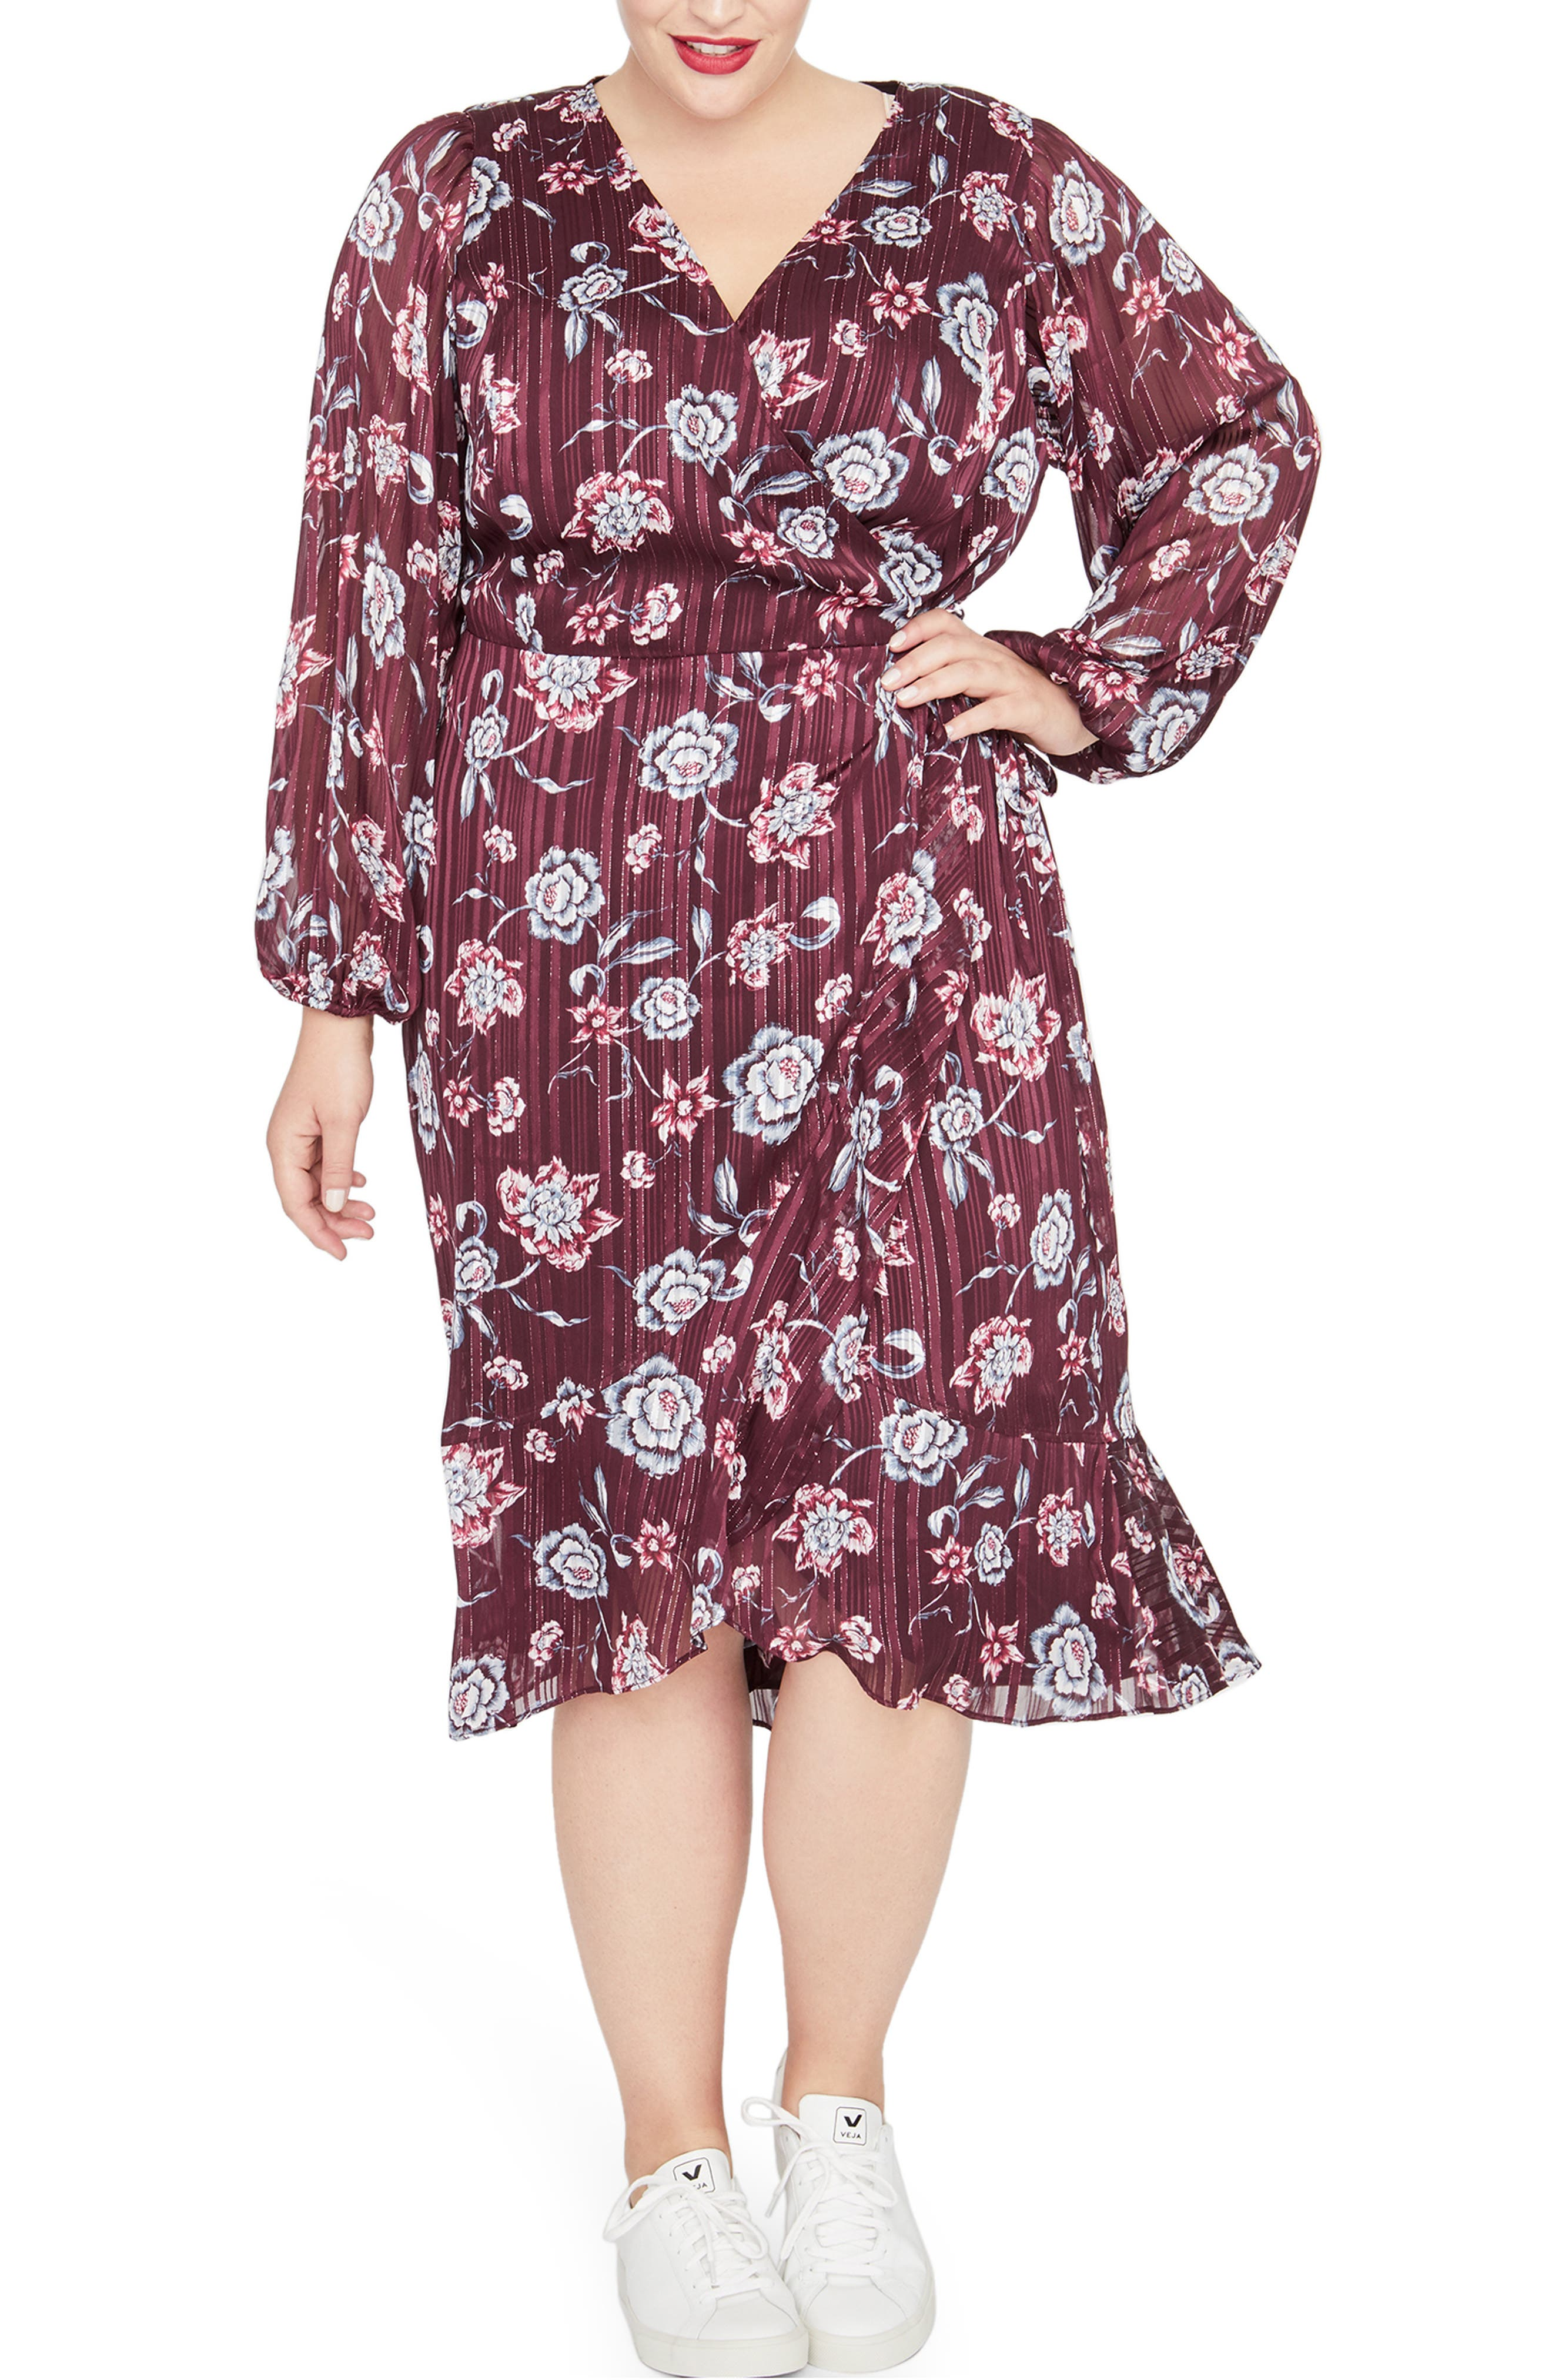 Gisela Floral Metalllic Detail Dress,                         Main,                         color, ROYAL ORCHID COMBO